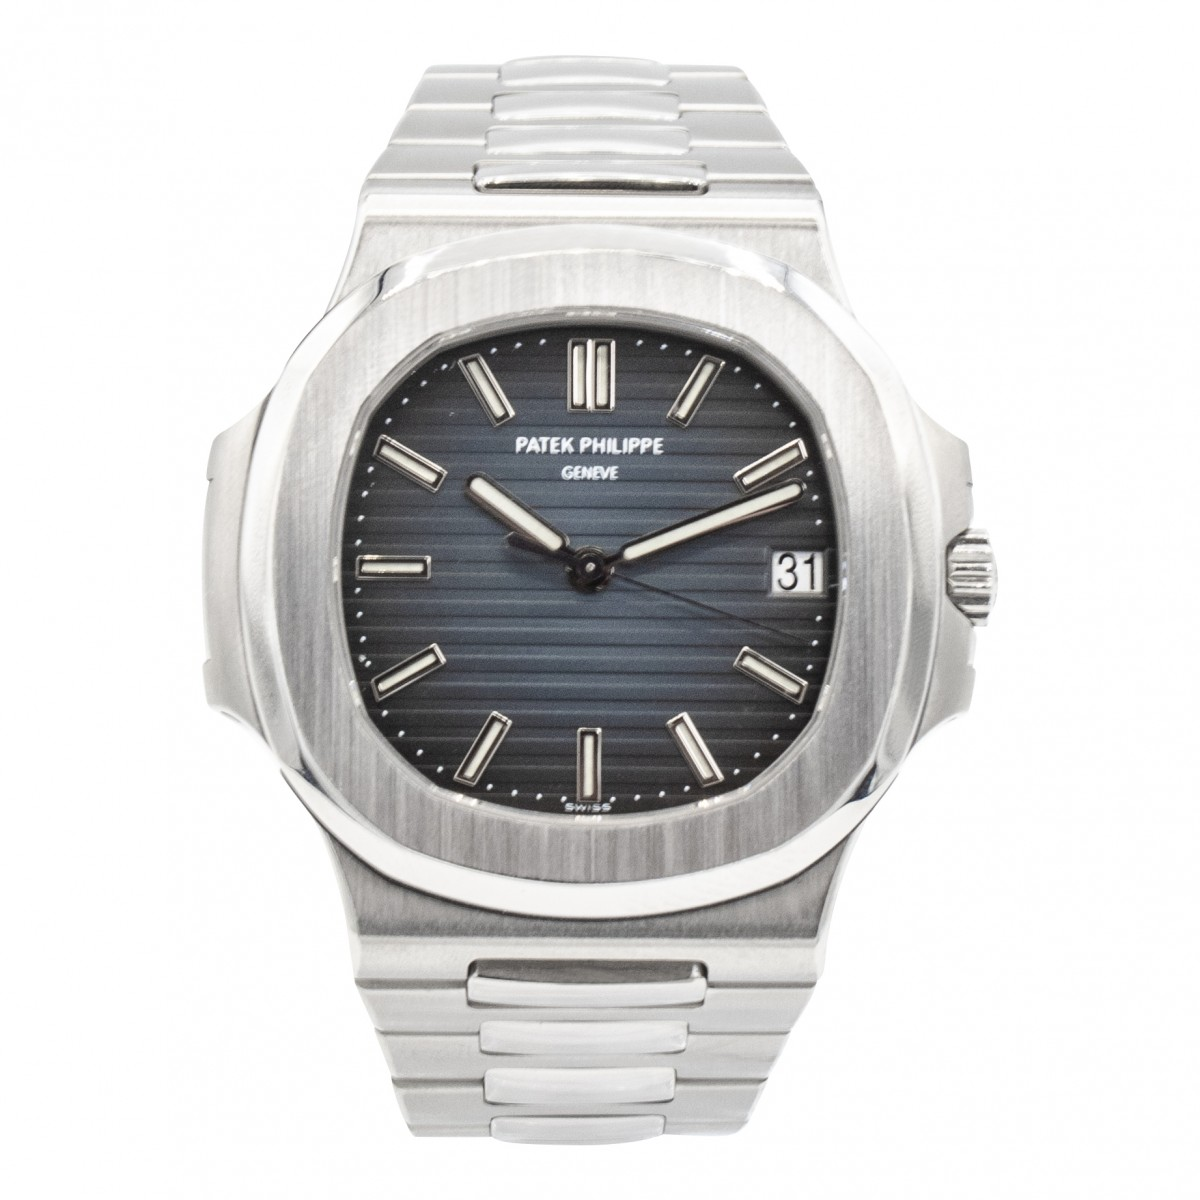 One World Different Times - Patek Philippe Nautilus Stainless Steel Blue  Dial W/ Geneva Seal